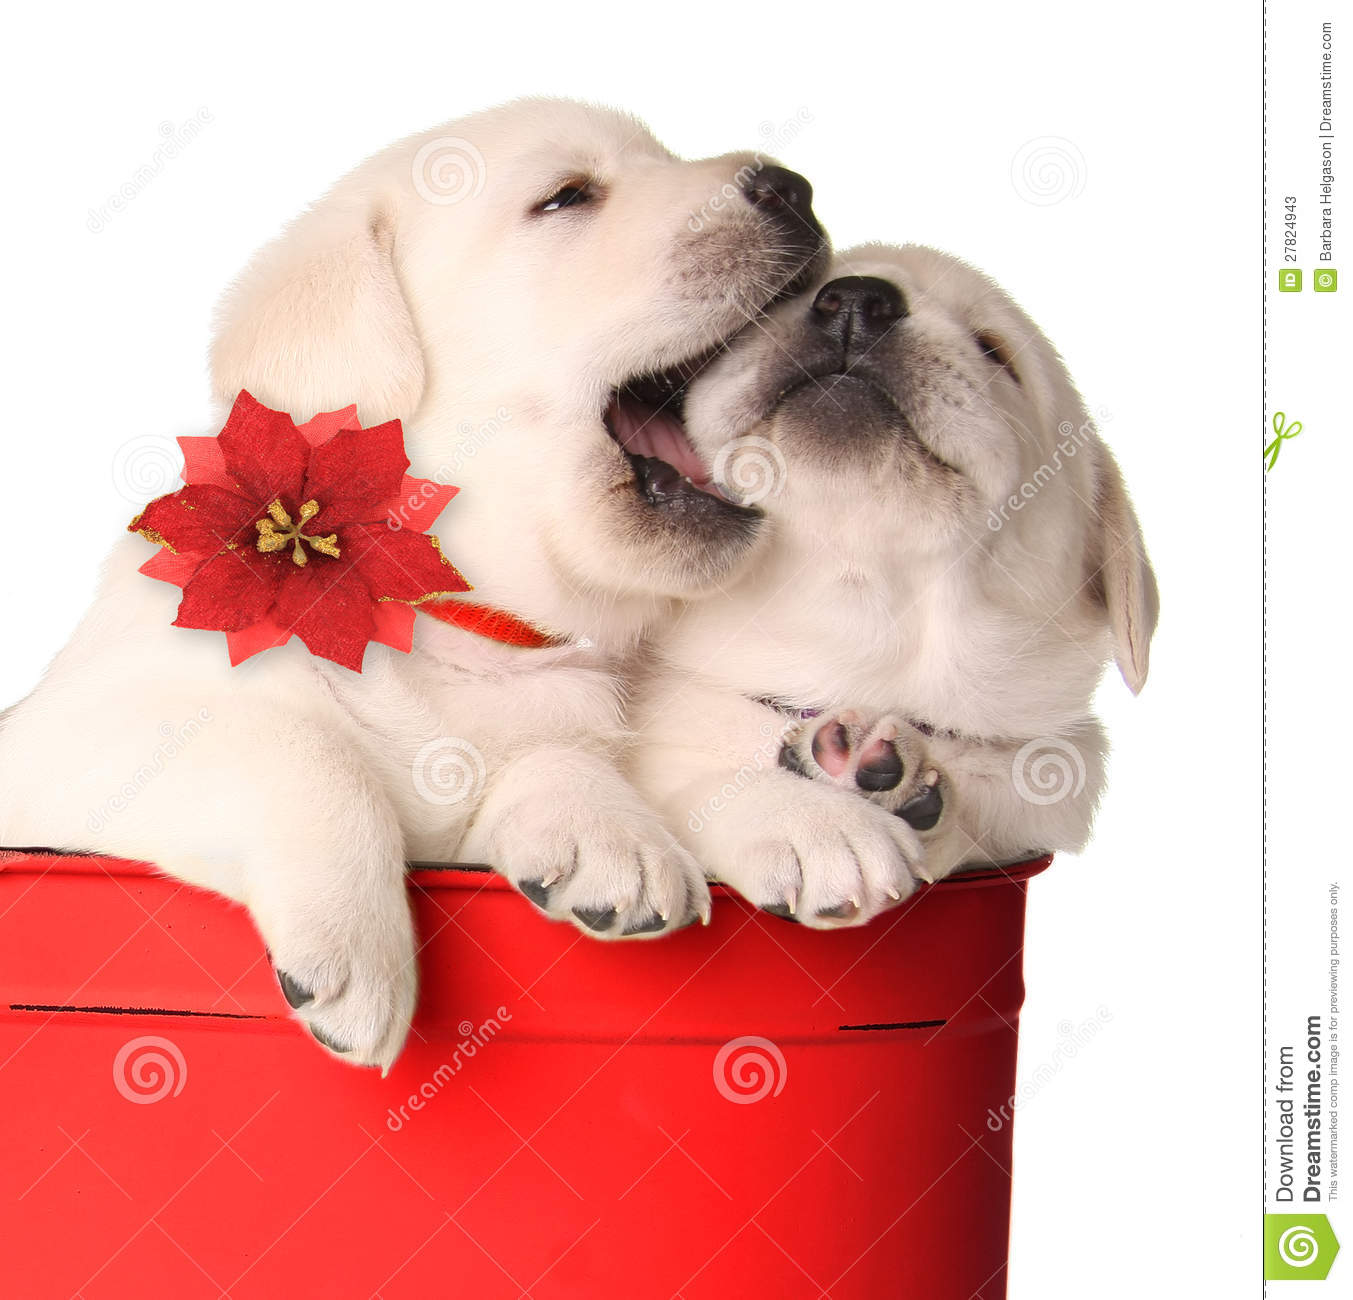 2 225 Christmas Puppies Photos Free Royalty Free Stock Photos From Dreamstime